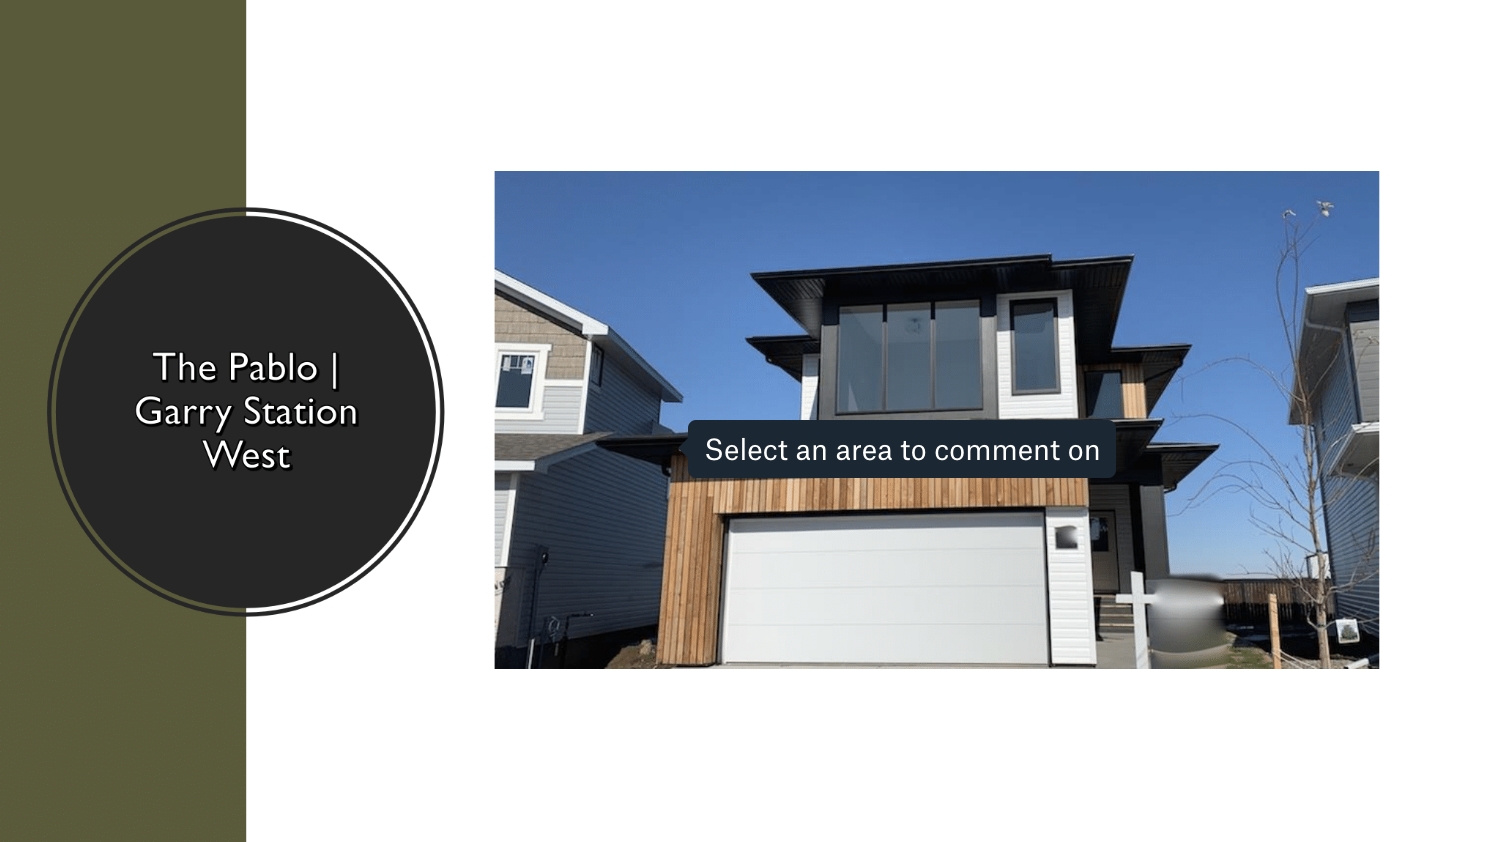 Single Family | $230,000 - $260,000 by Ashcroft Homes